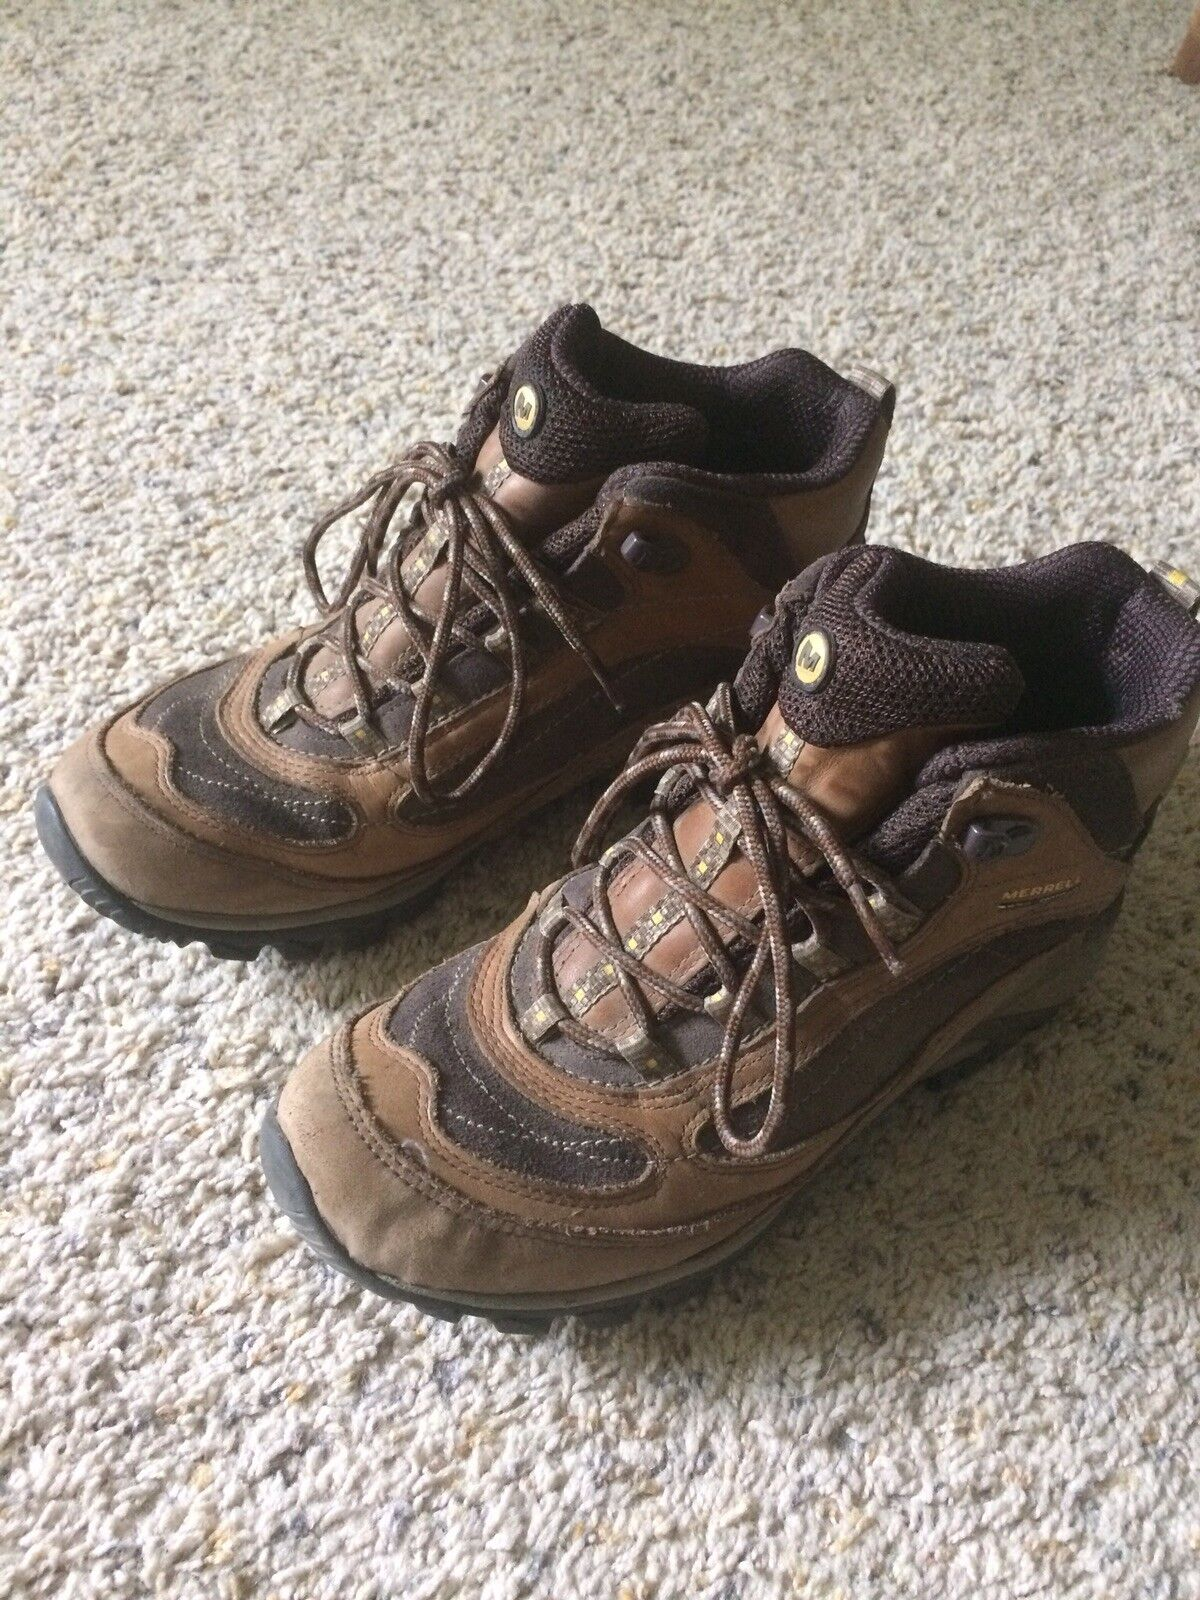 Merrell Siren waterproof hiking boots Size 8.5 Women